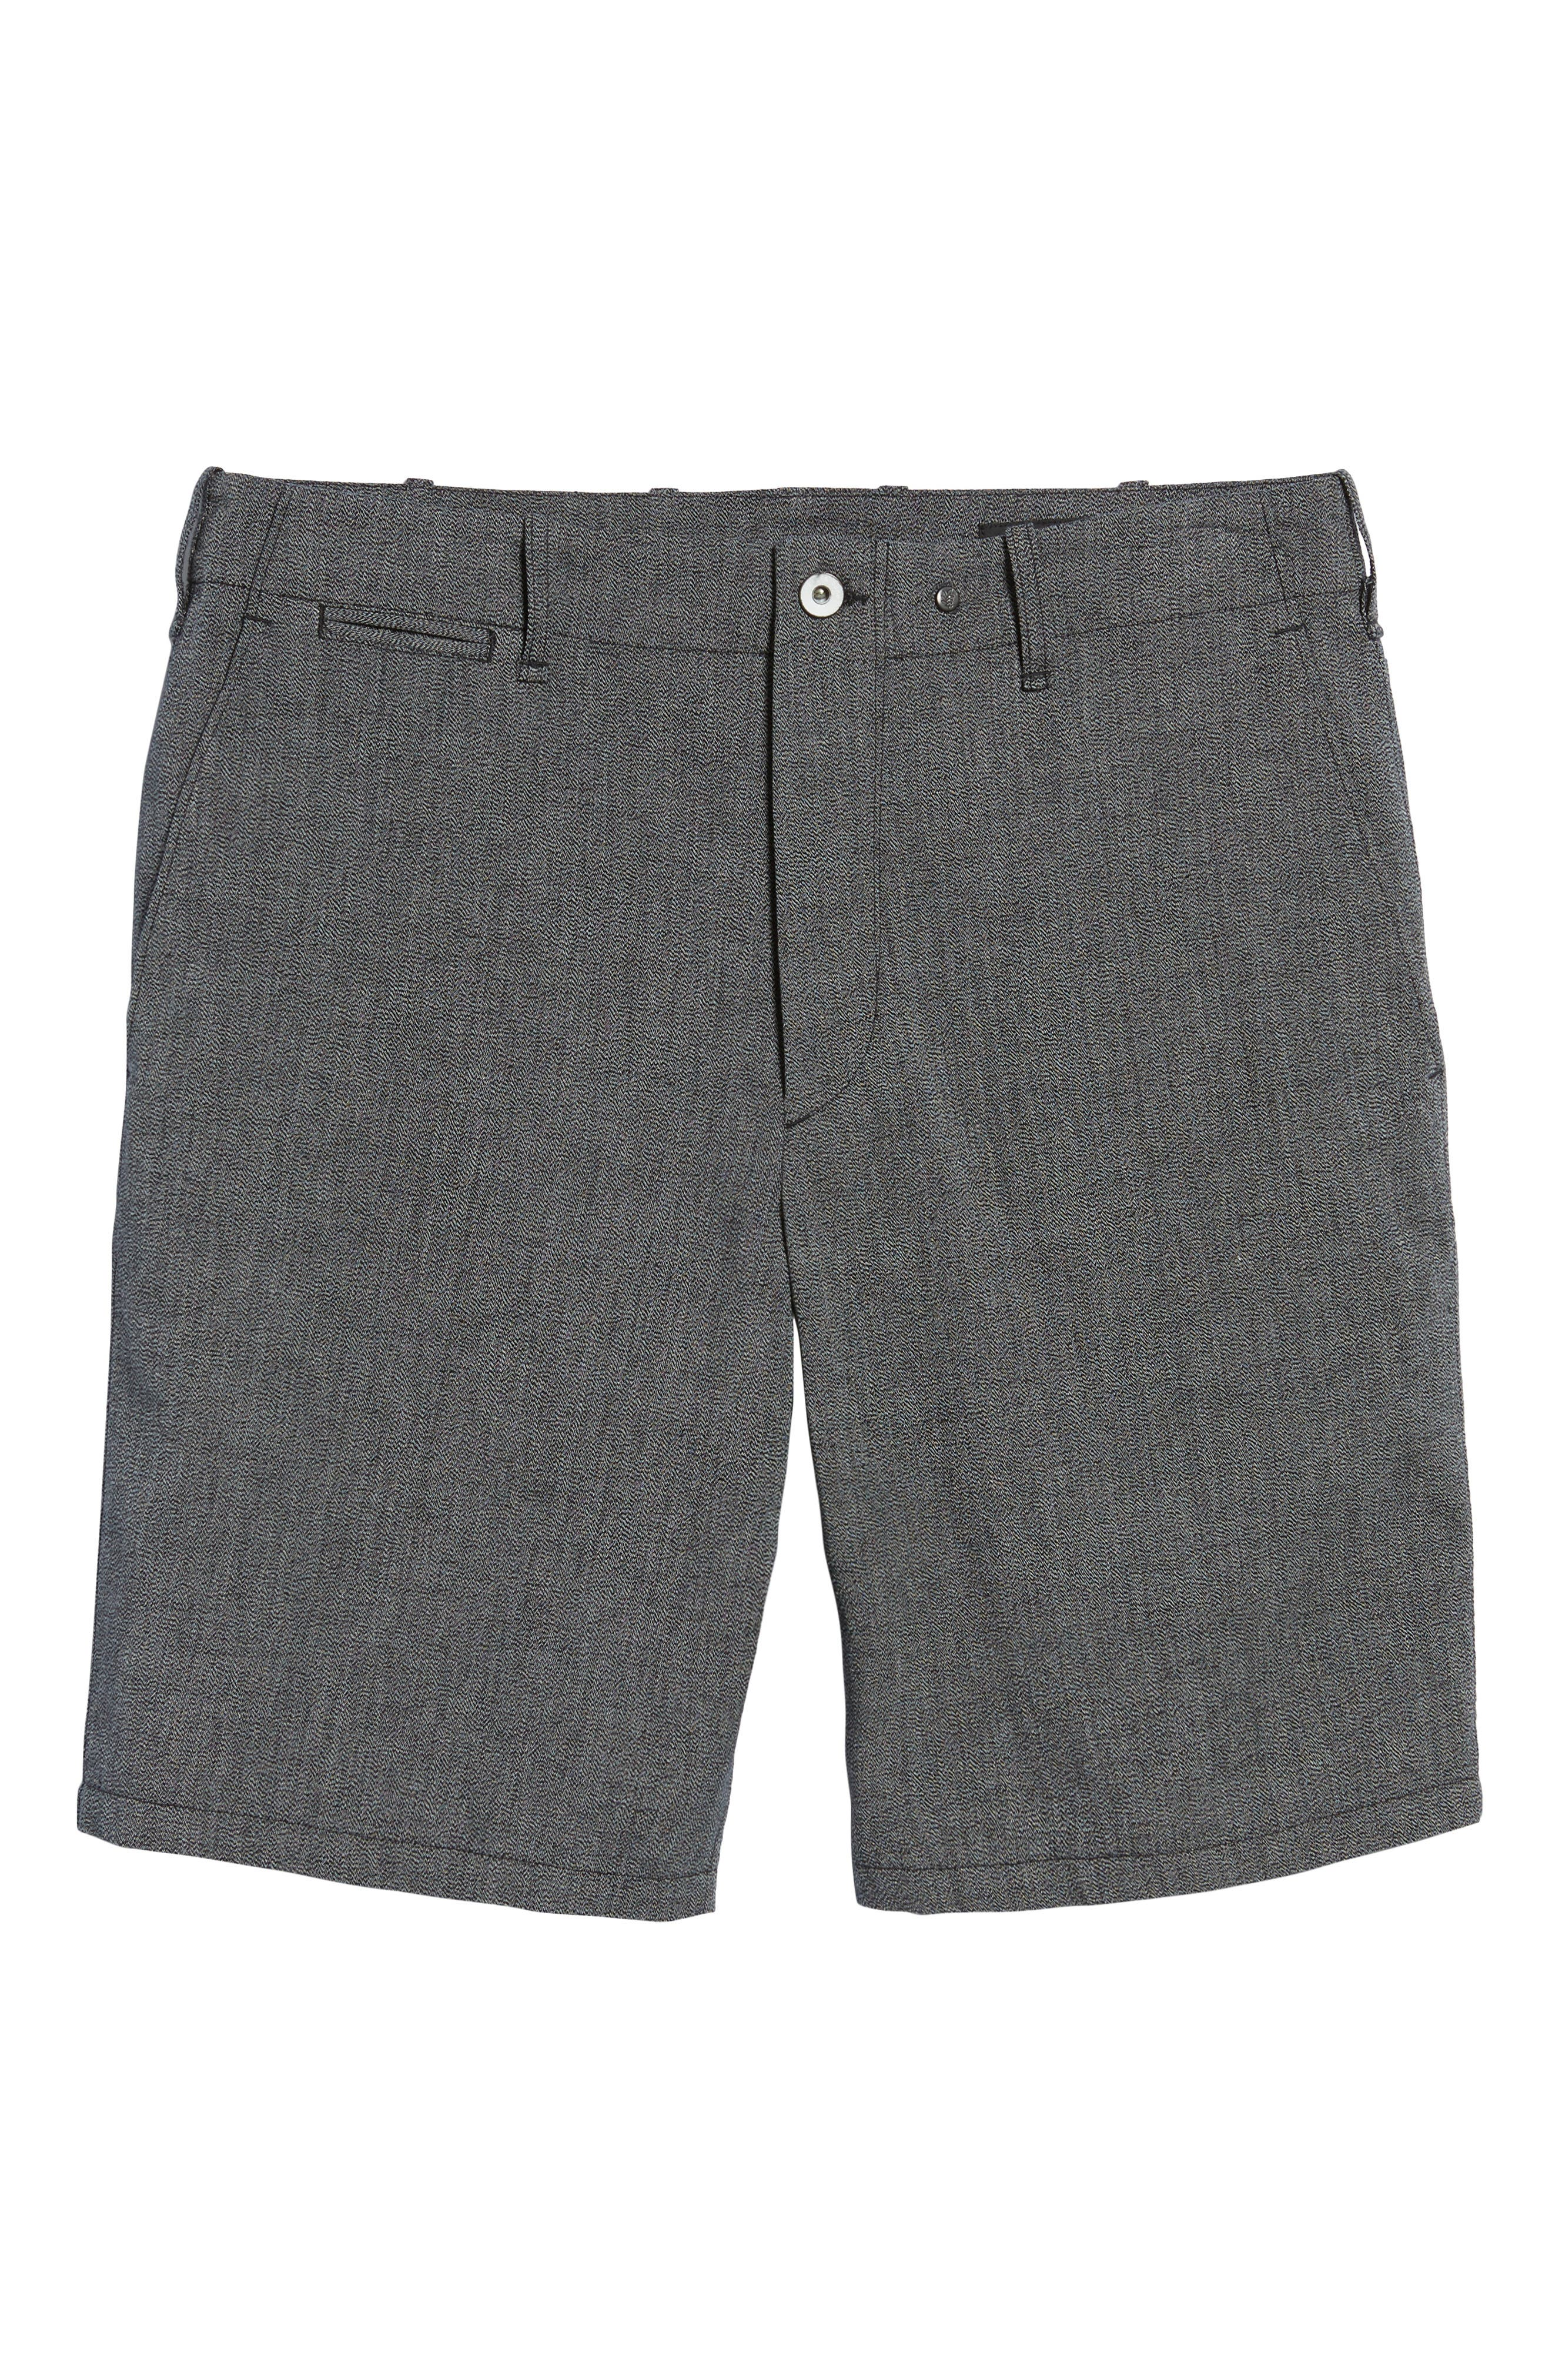 Base Classic Fit Shorts,                             Alternate thumbnail 6, color,                             Grey